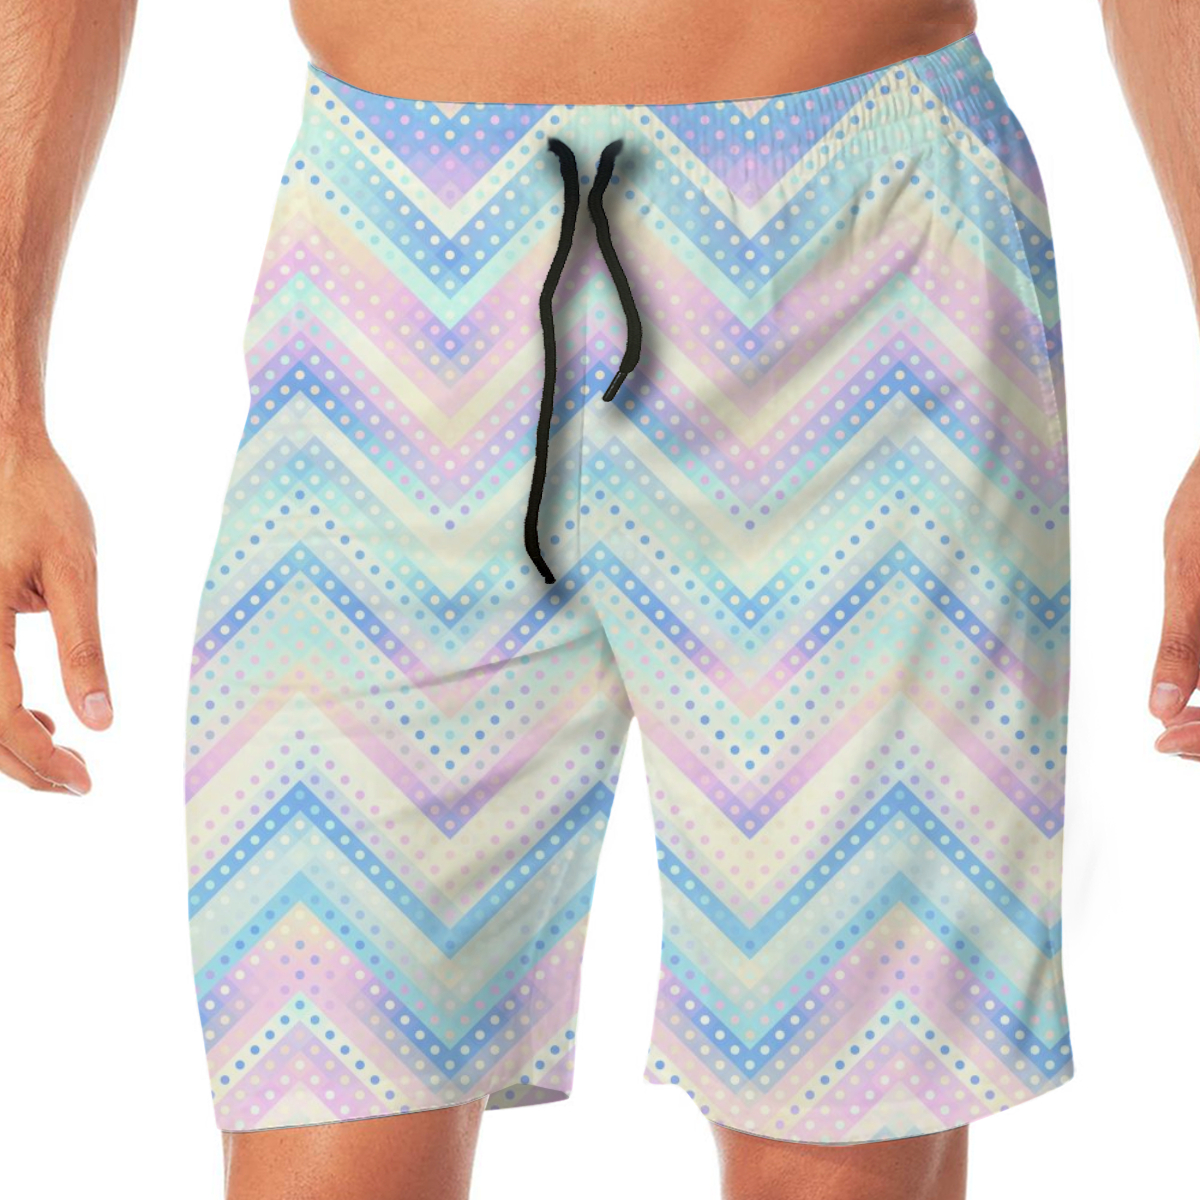 Summer Geometric Chevron Shapes Polka Dot Pattern Men Novelty Gay Funny Lounge Pants Beachwear